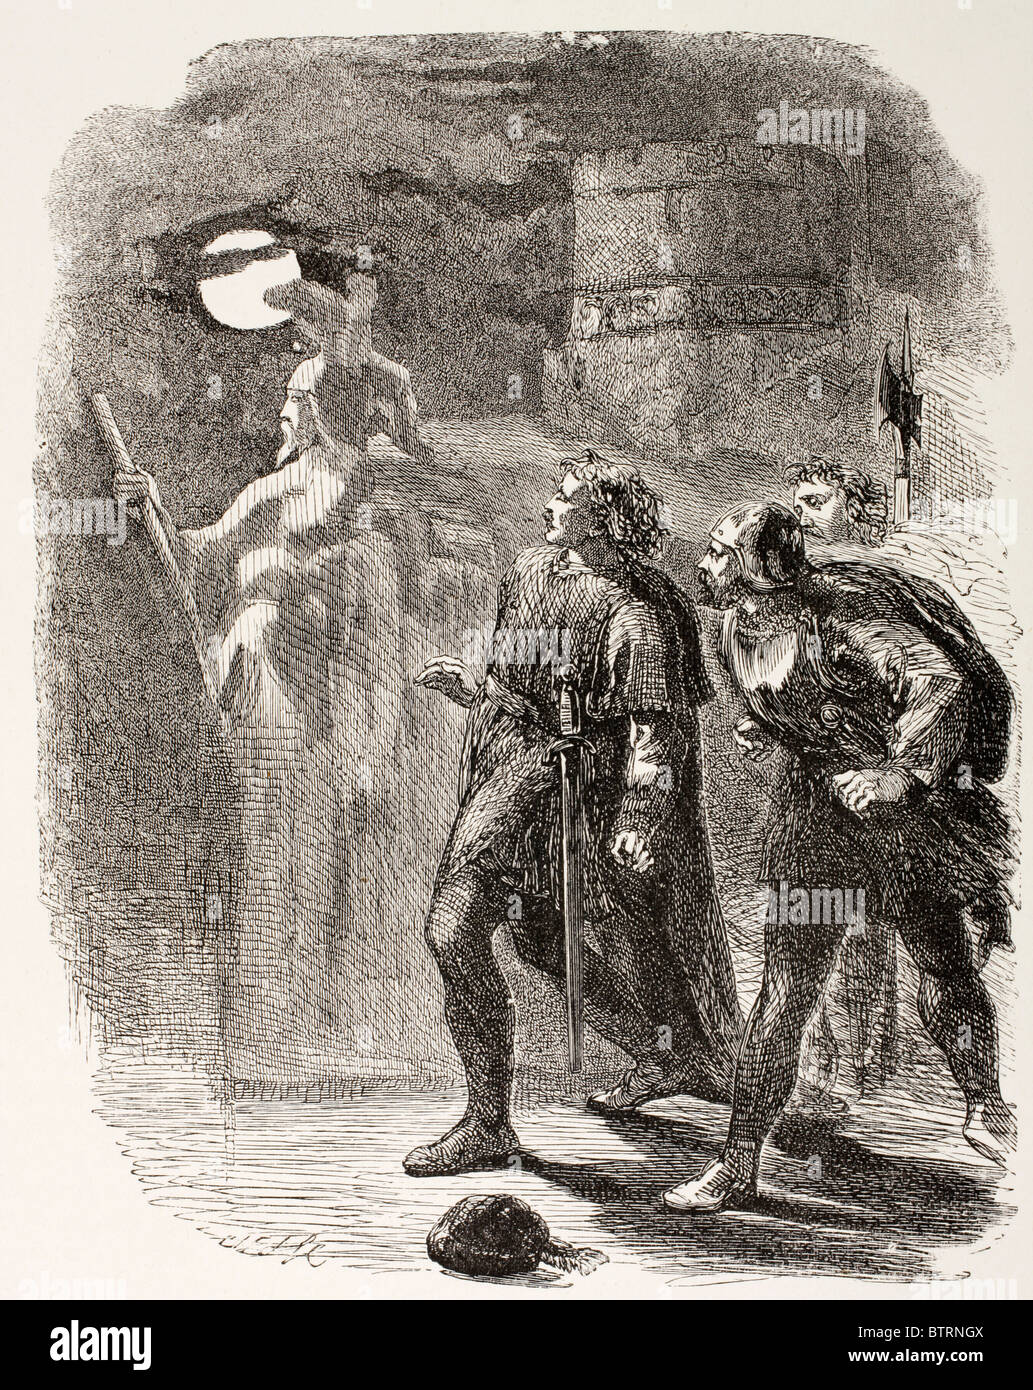 Illustration from Hamlet by William Shakespeare. Hamlet, Horatio and Marcellus see the Ghost. - Stock Image